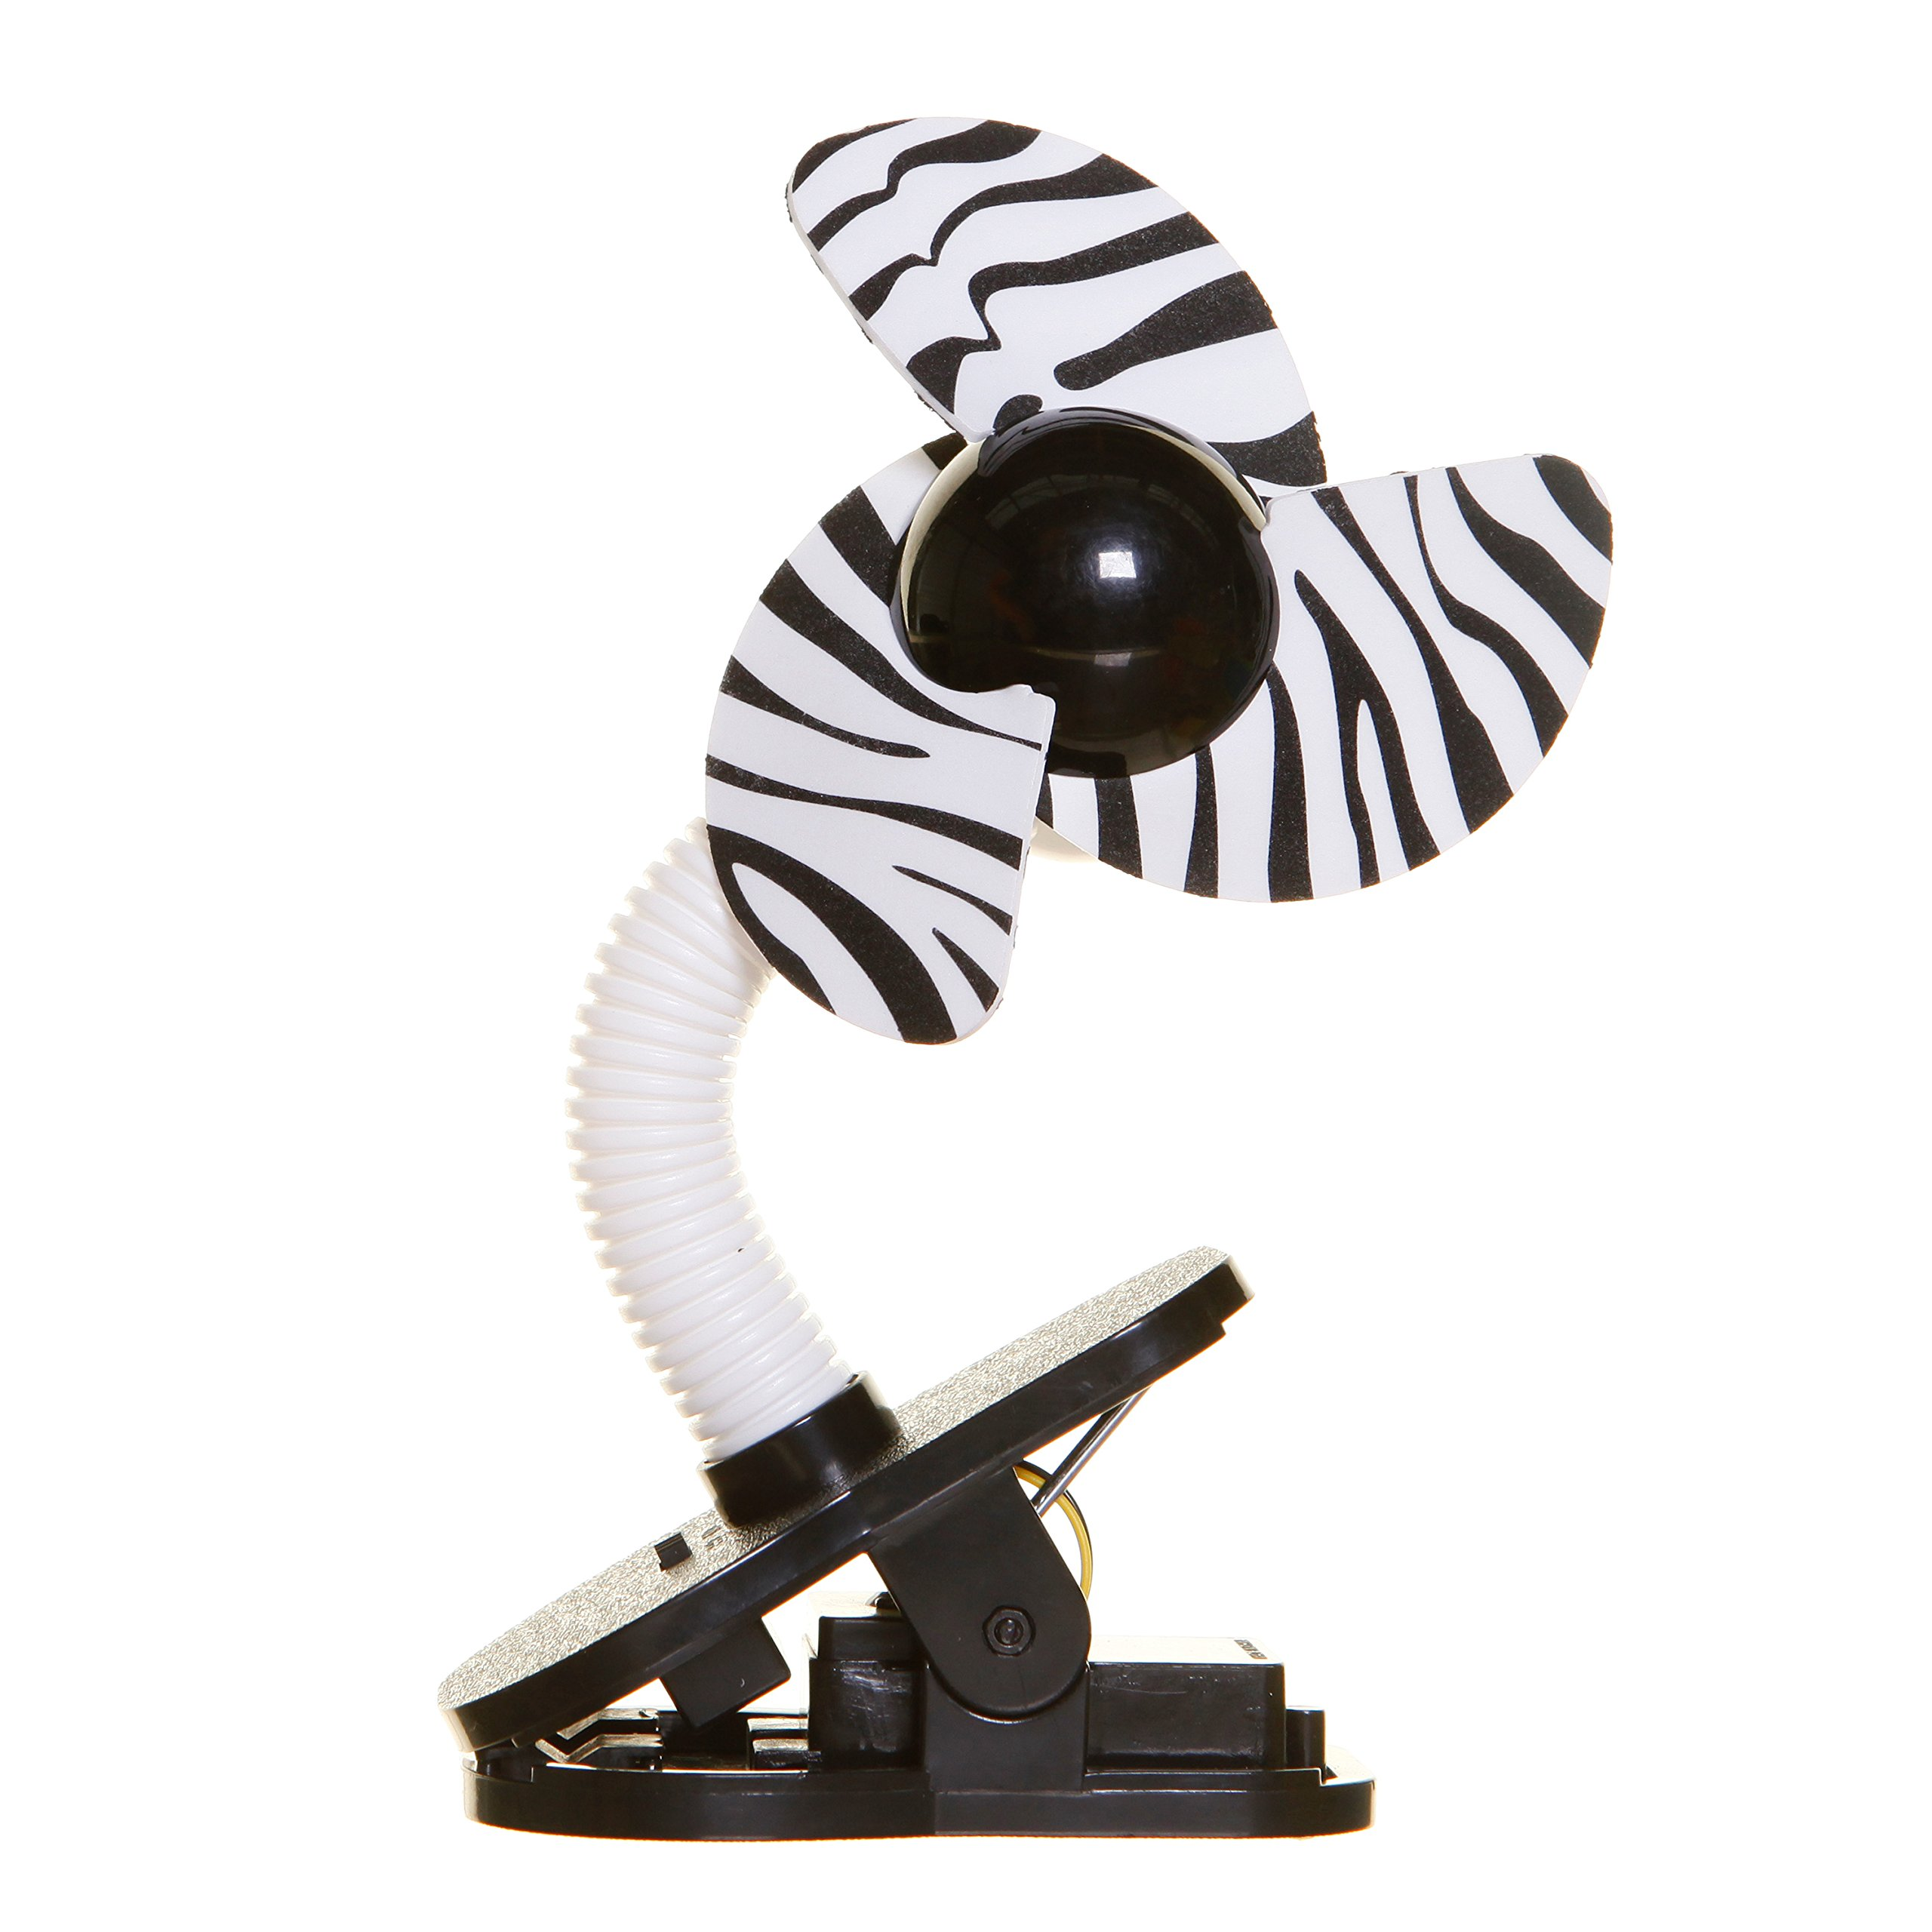 Tee-Zed Clip-On Fan Great for the Beach, Pool, Camping, Work, Lounging or Just Chillin'! - Zebra Print